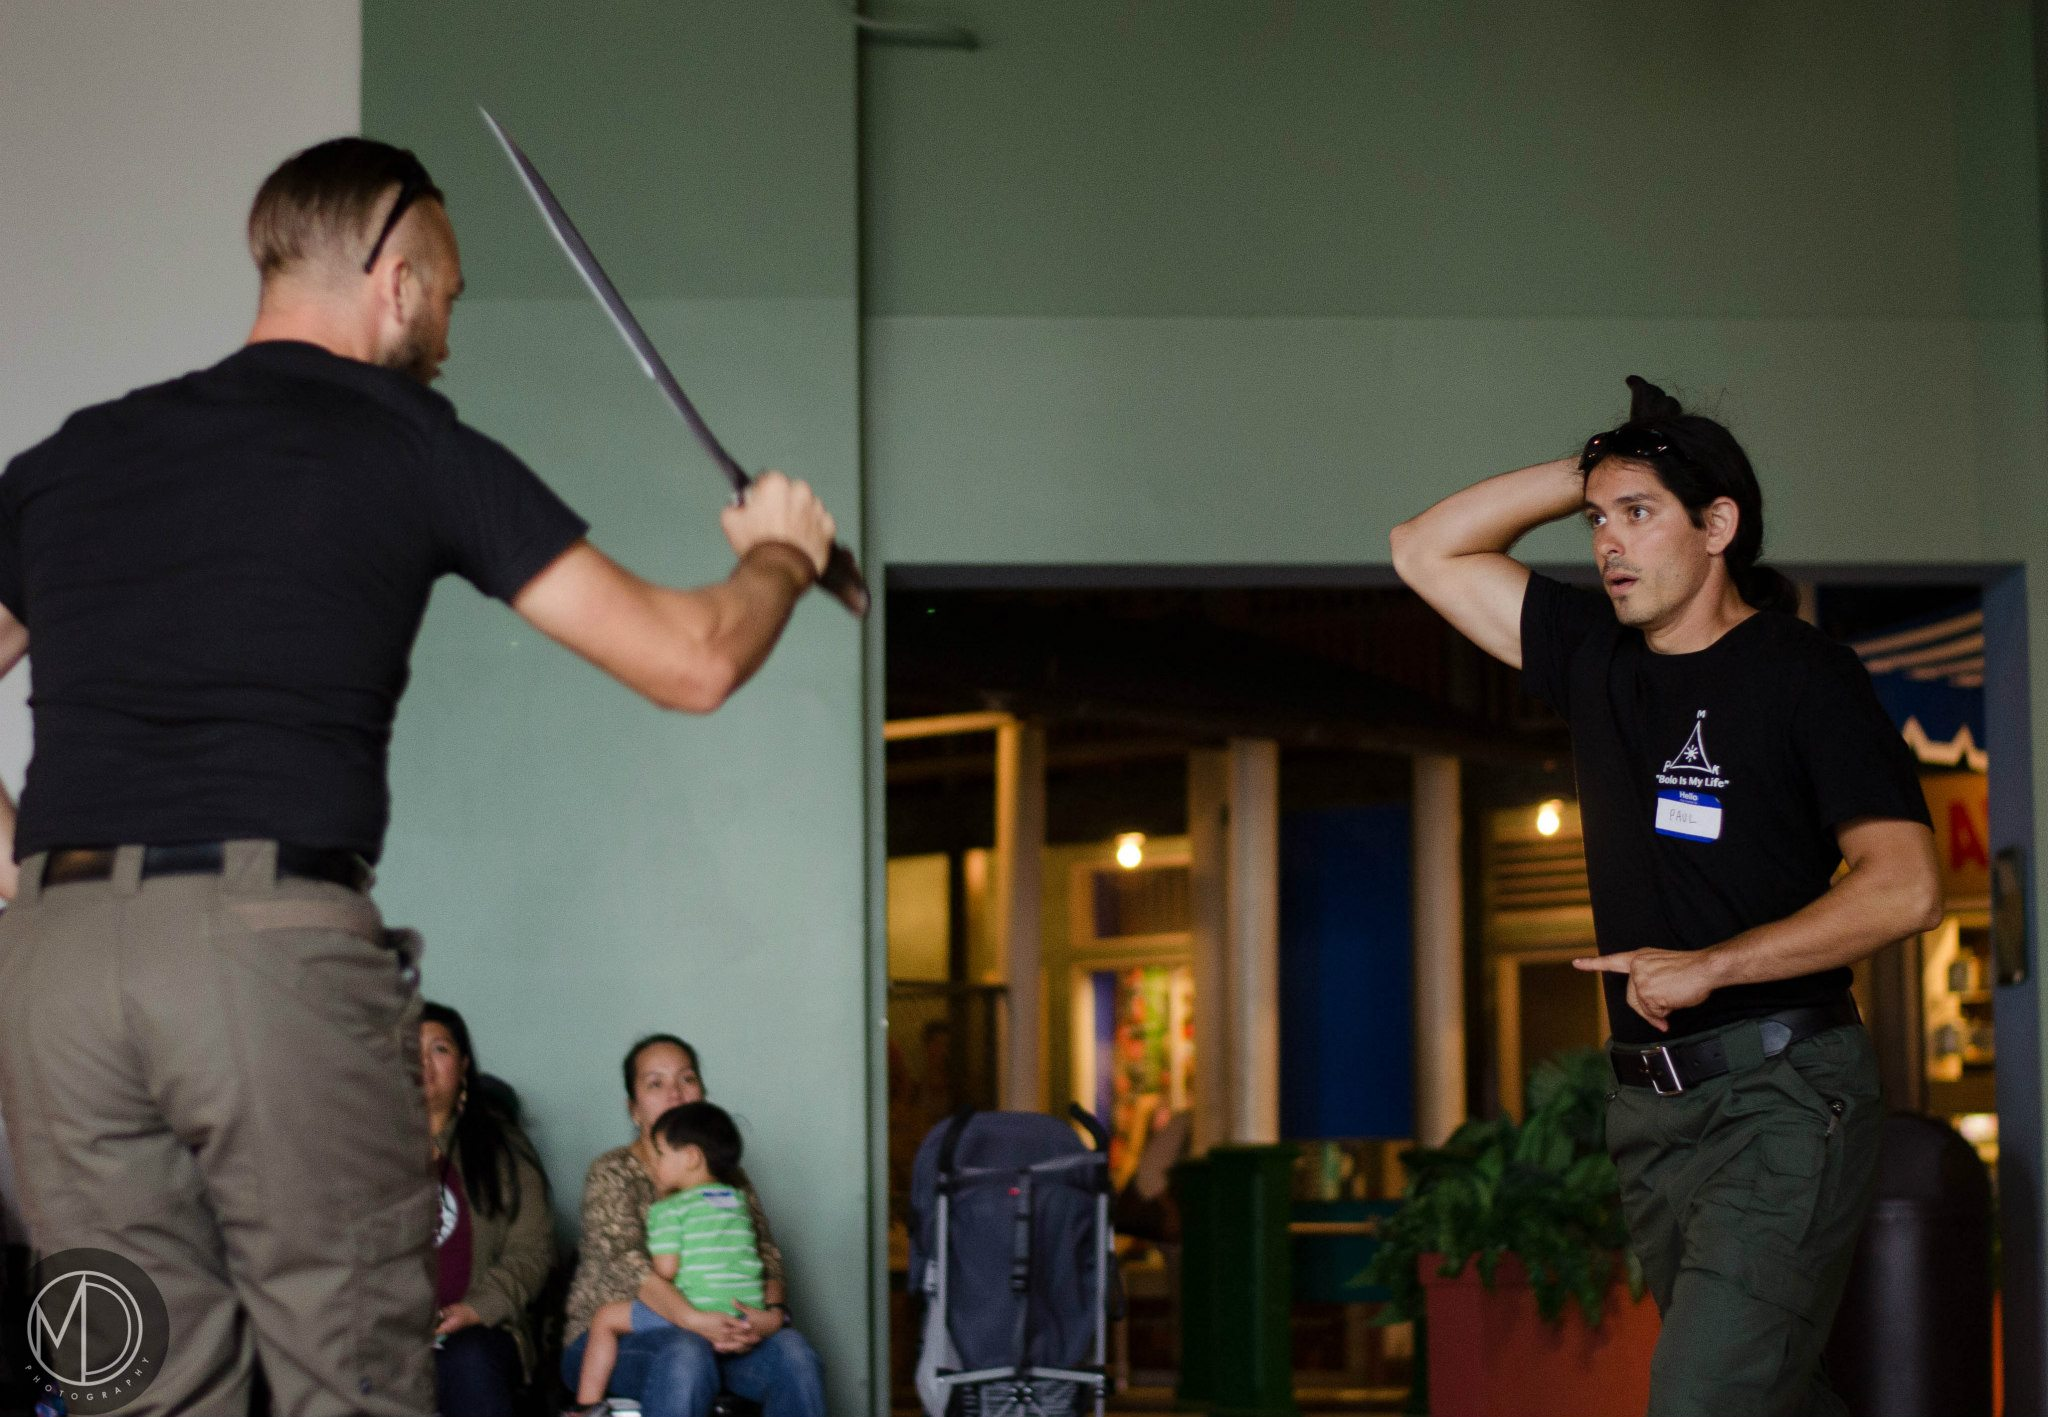 Members of Kali Center, Tom and Paul, demonstrate techniques of this martial art.